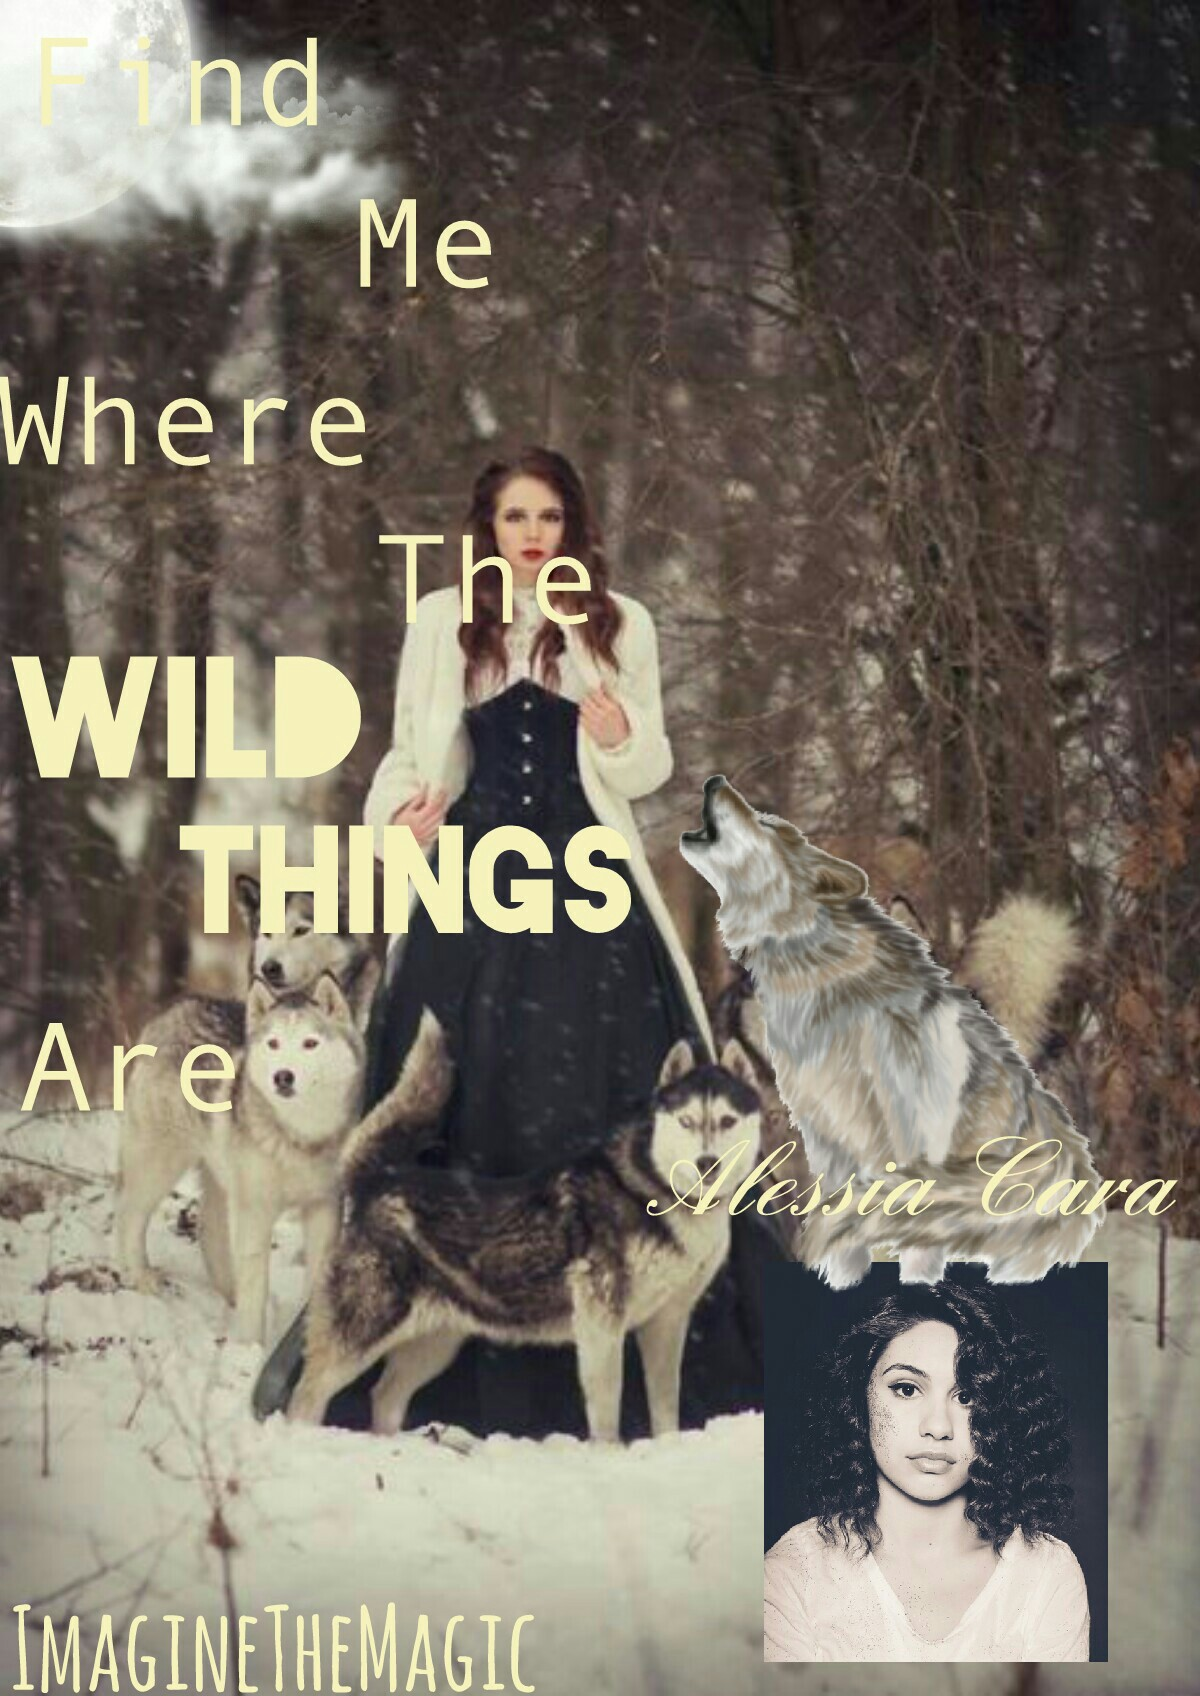 Wild Things By Alessia Cara! This is my personal thought process on the songs meaning put on a collage.